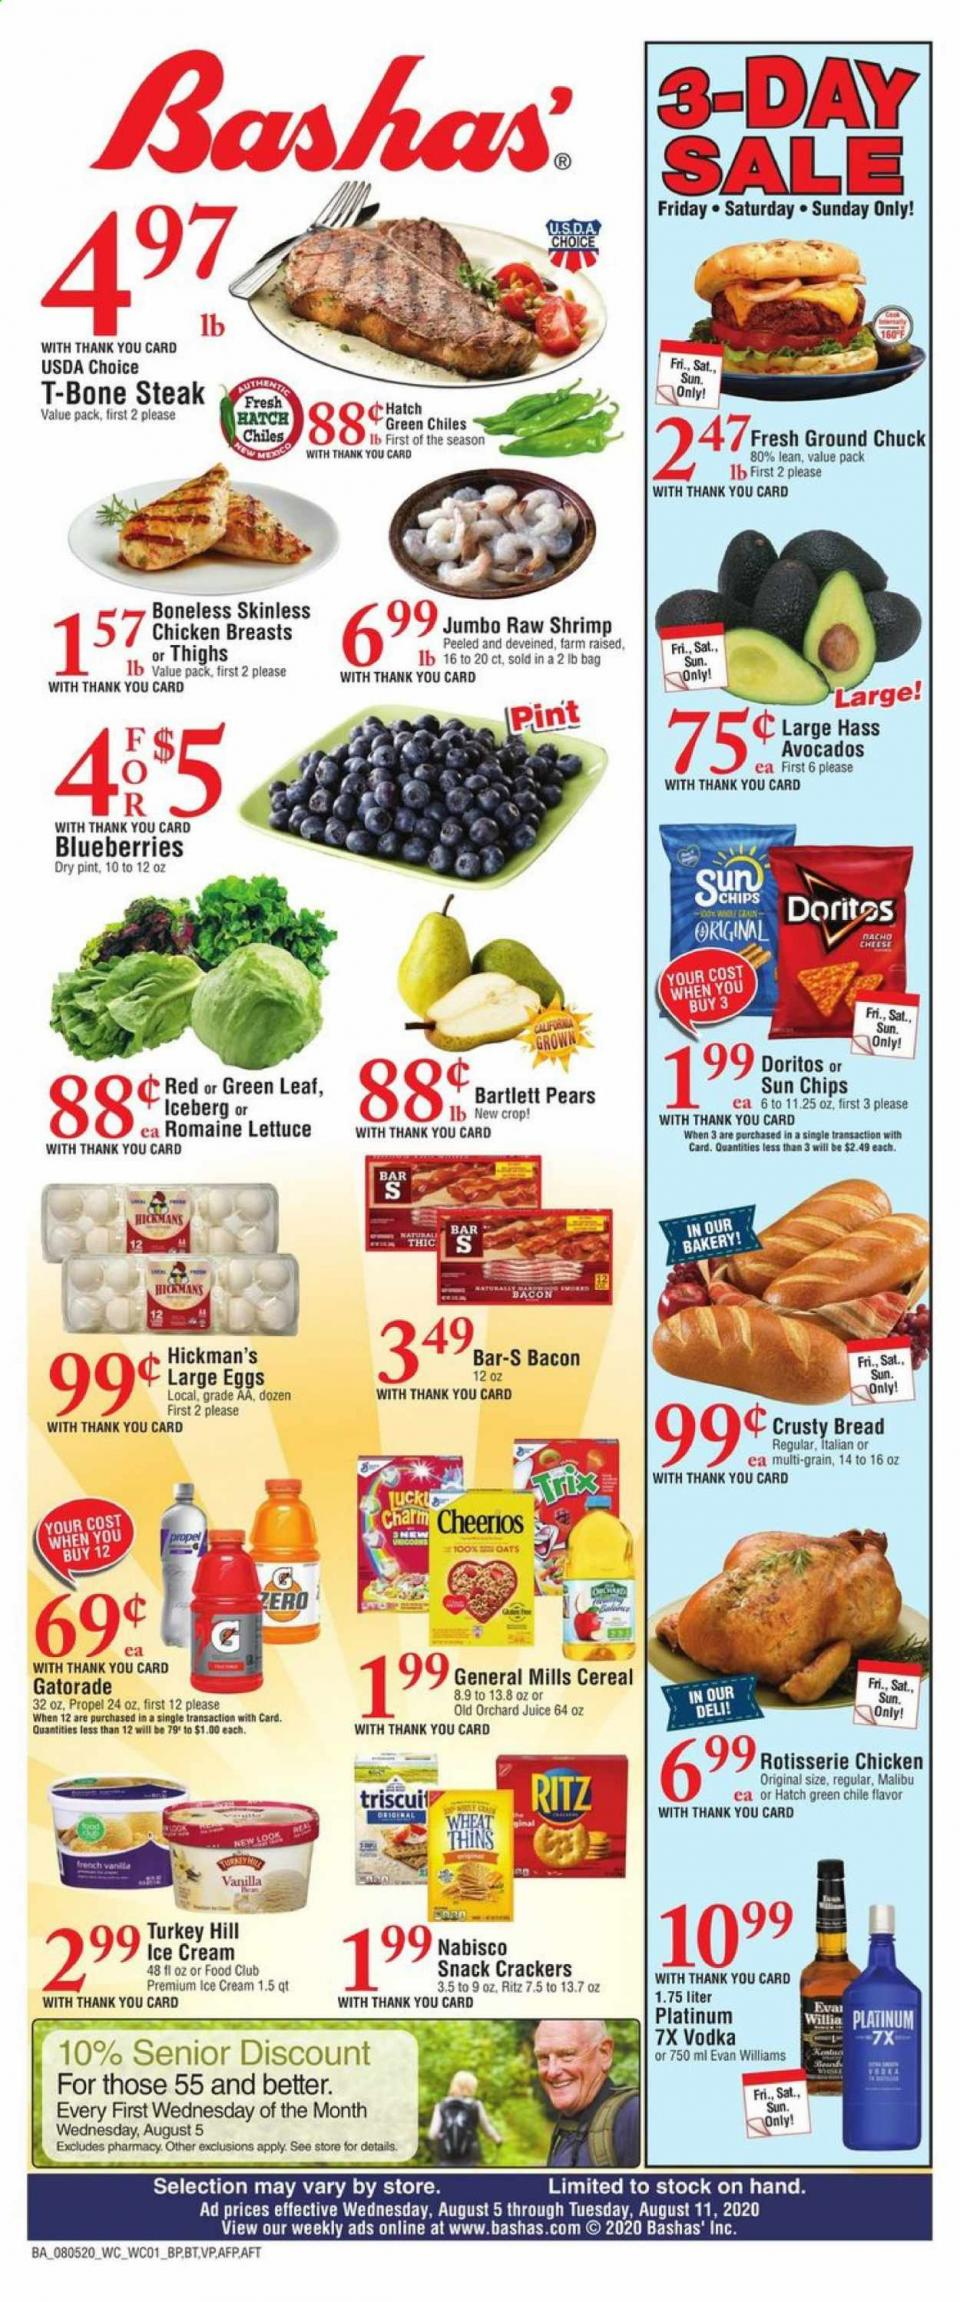 Bashas August Weekly Ad valid from Aug 5 – 11, 2020